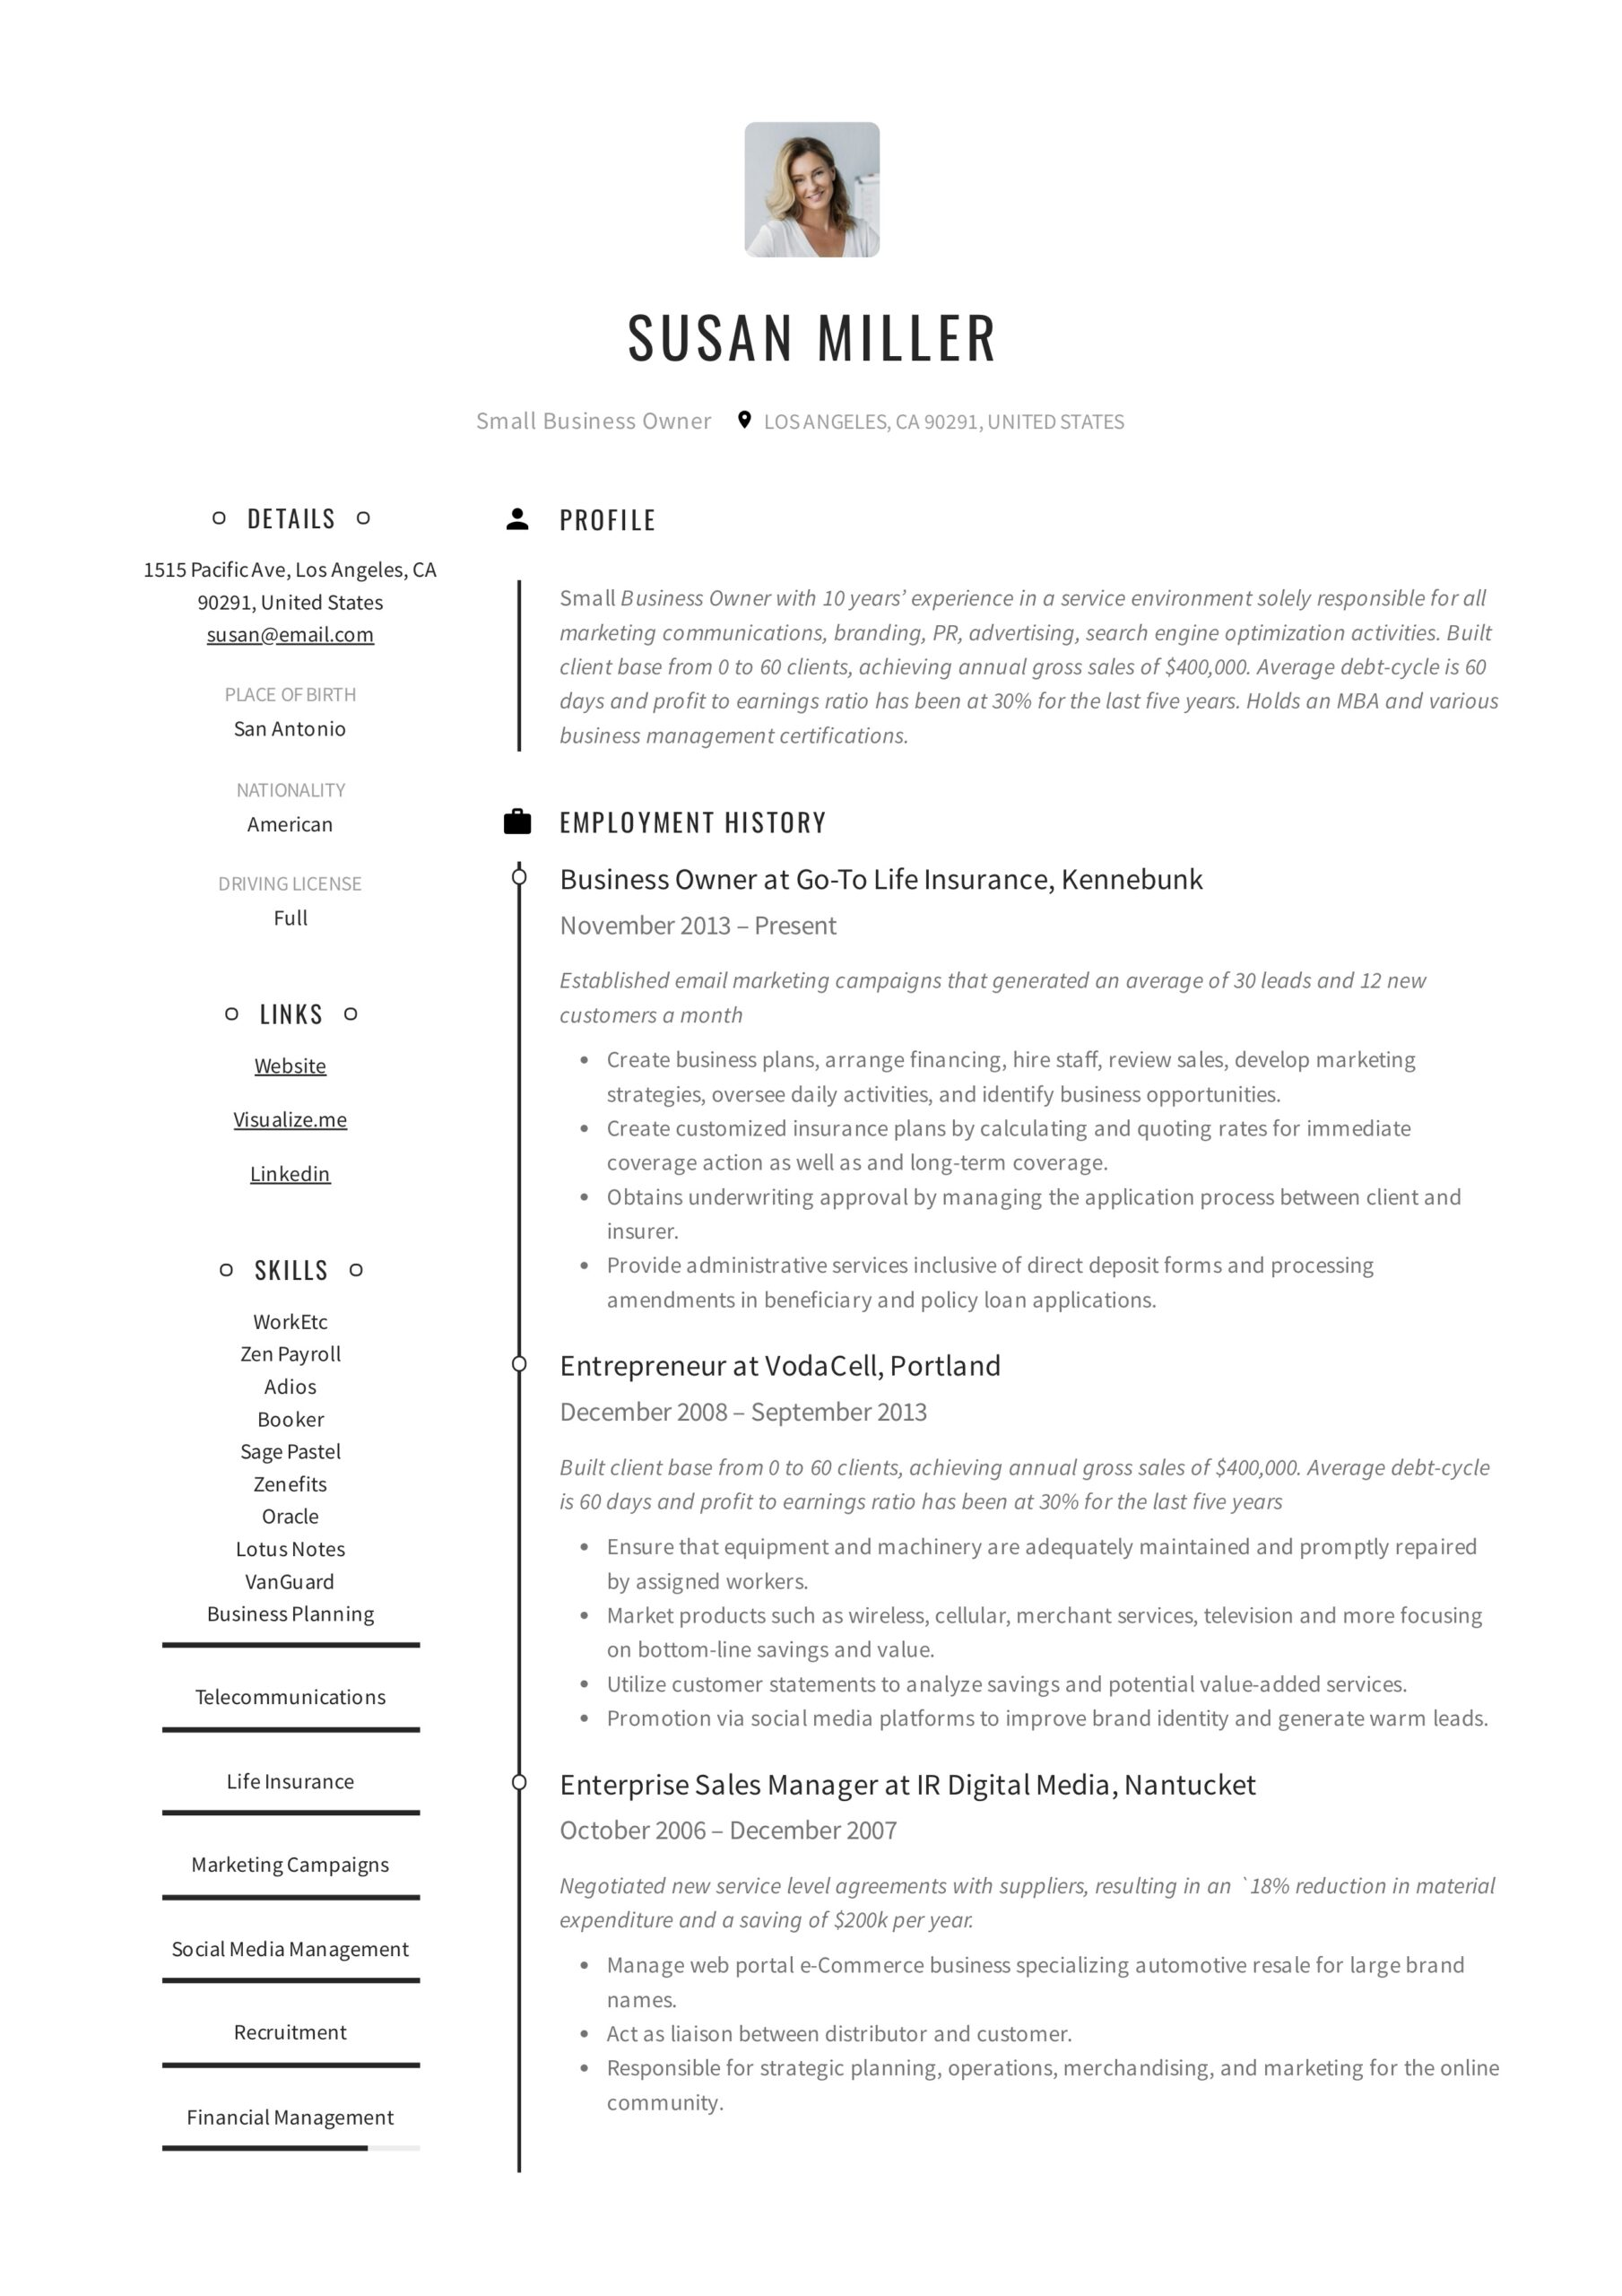 small business owner resume guide examples pdf self starter example modern clean Resume Self Starter Resume Example